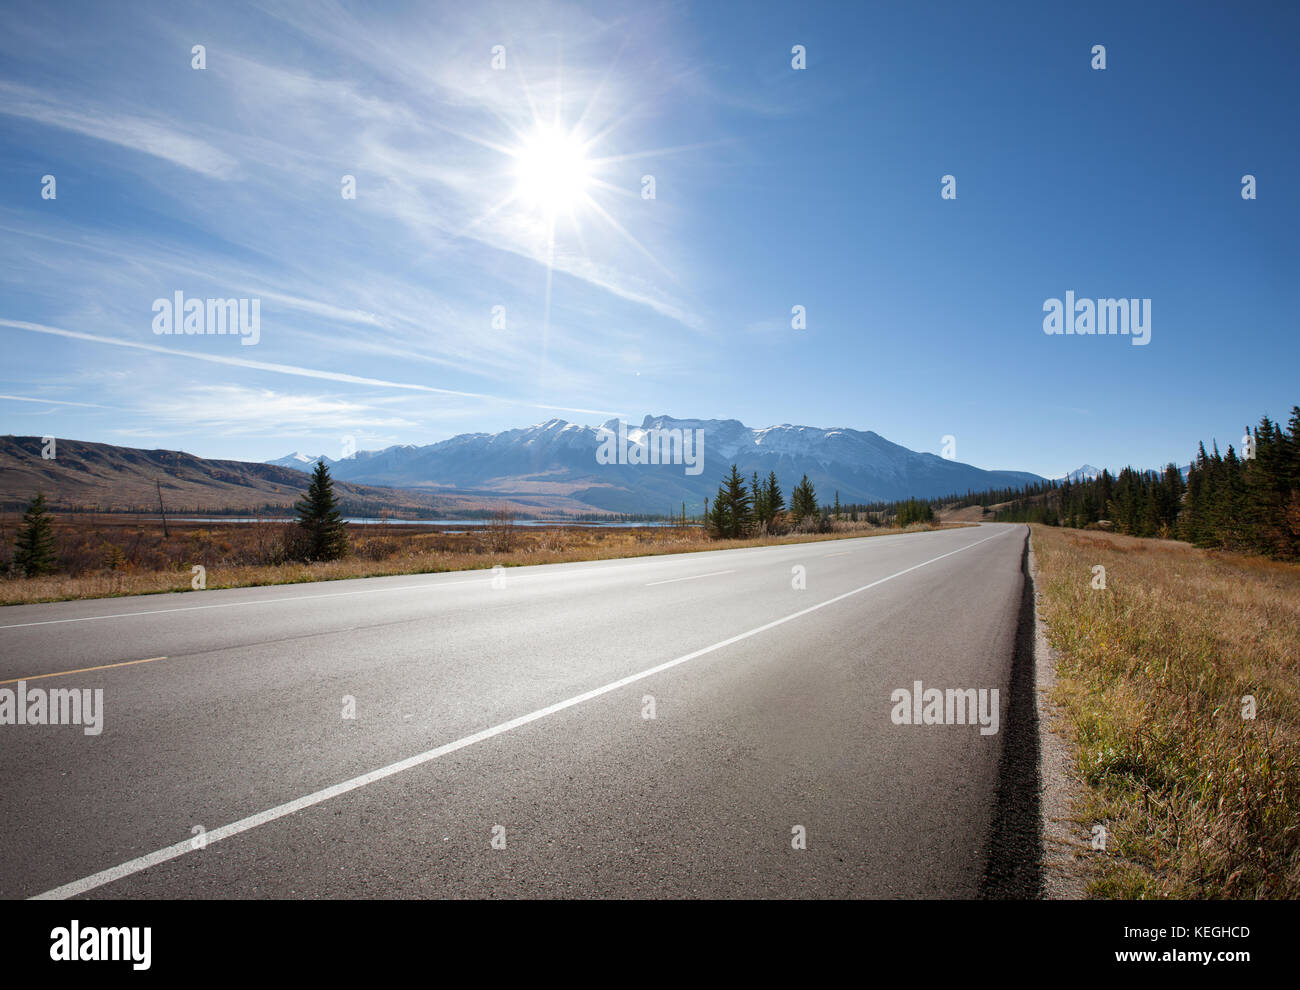 an empty stretch of the canadian highway through the rocky mountains in Jasper, Alberta - Stock Image